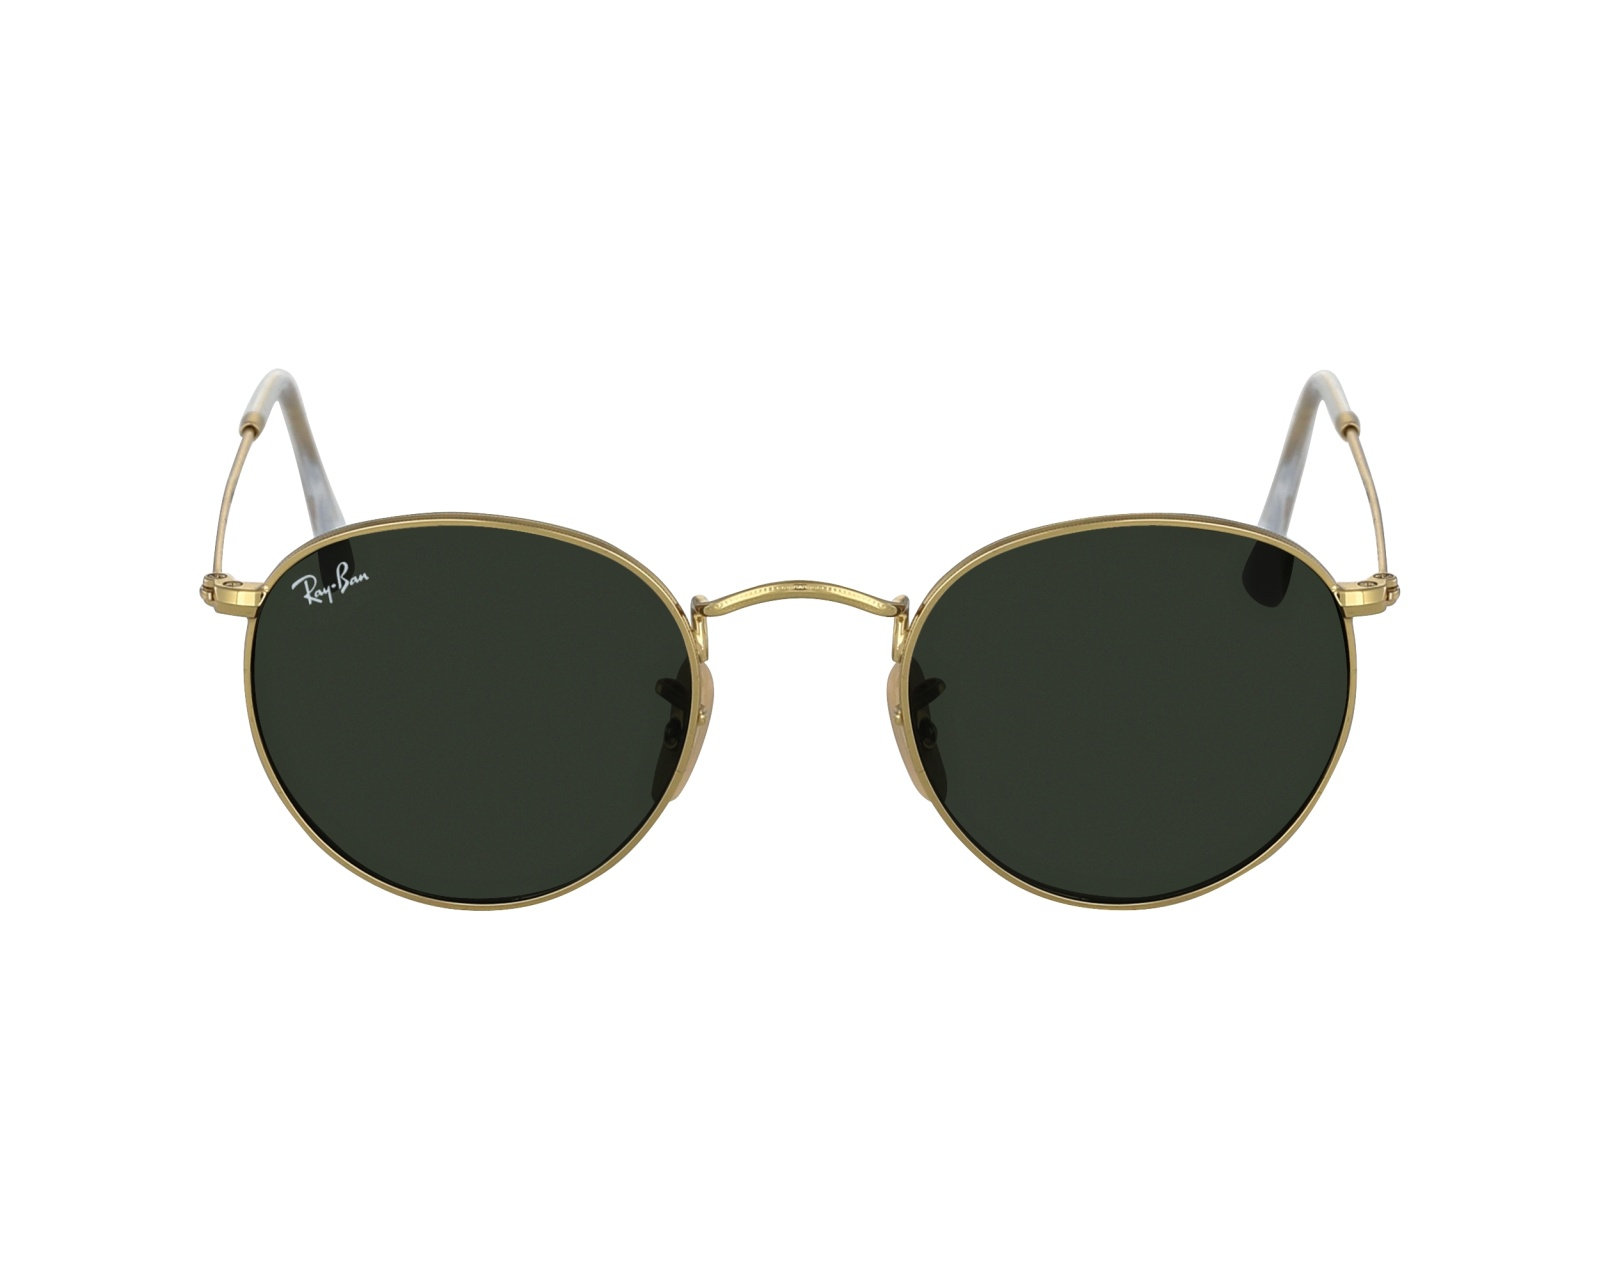 f375f6abcddca Sunglasses Ray-Ban RB-3447 001 47-21 Gold profile view